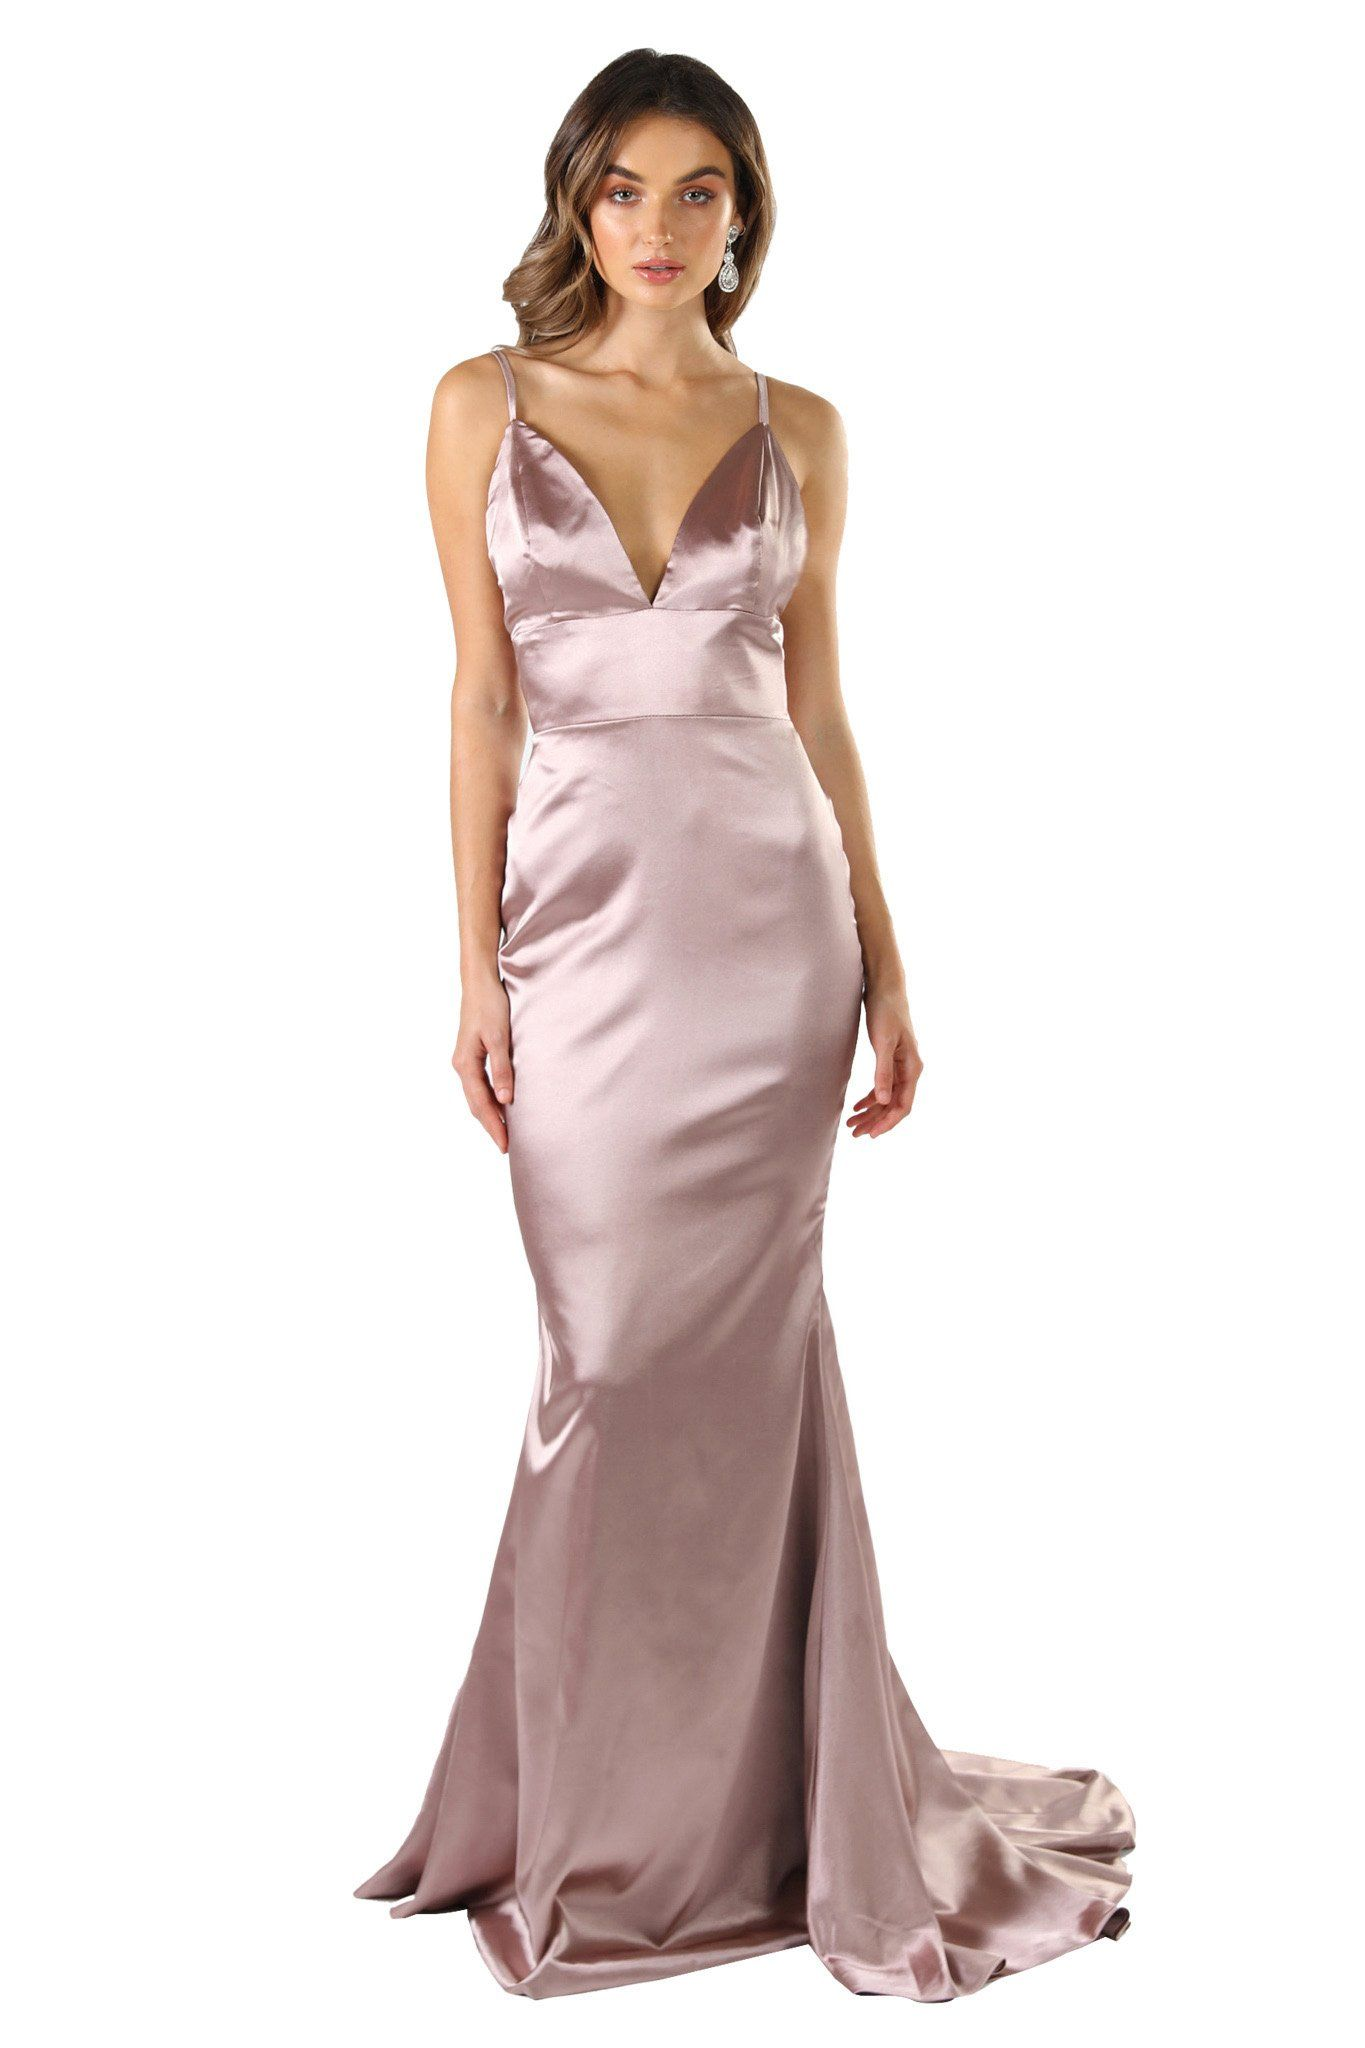 Champagne silk satin floor length formal evening sleeveless gown with V neckline, thin shoulder straps, backless design and long train